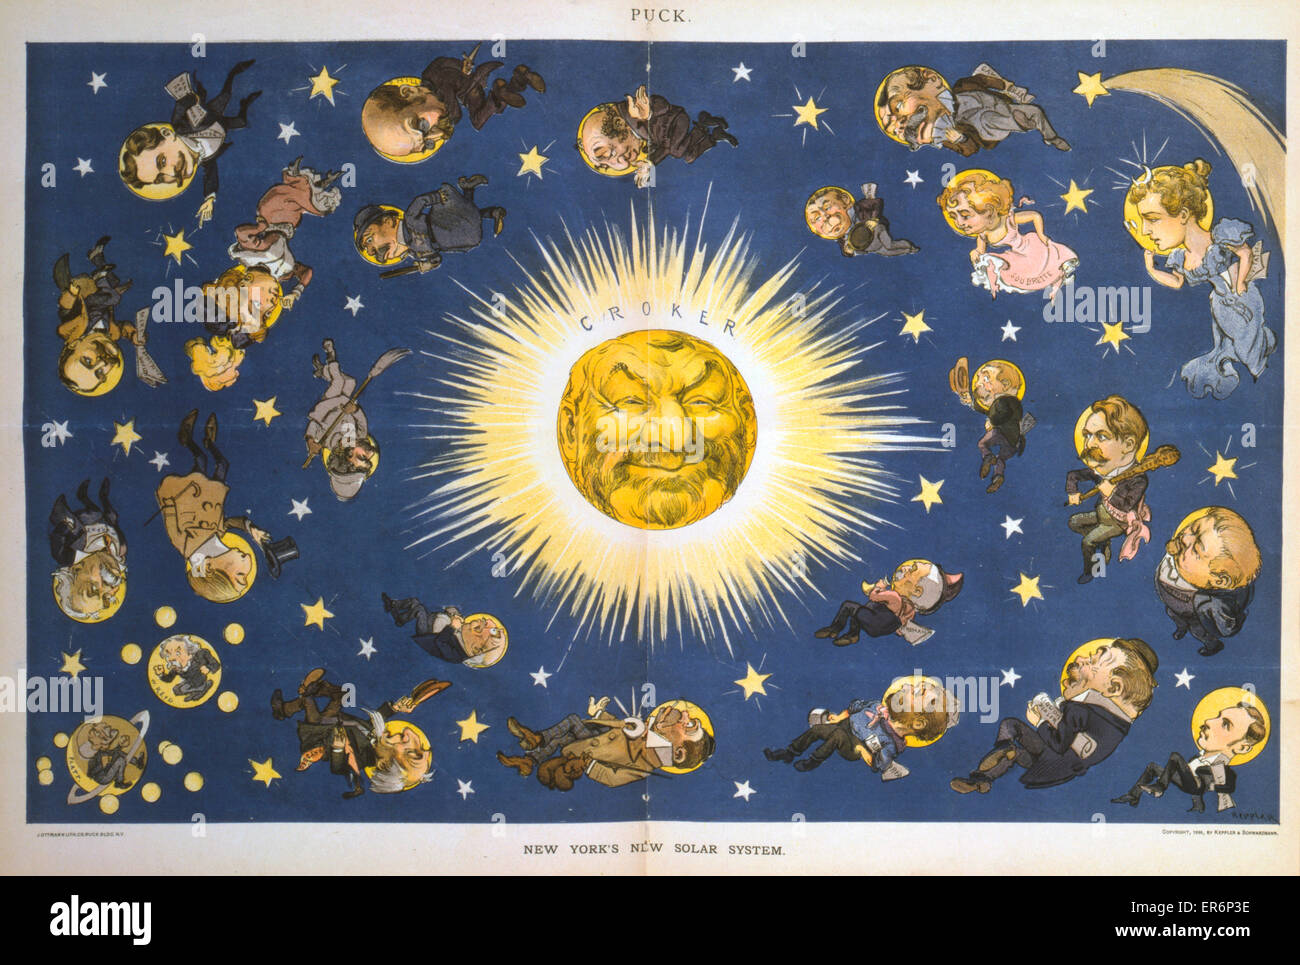 New York's new solar system. Caricature showing politicians and people representing different professions revolving - Stock Image